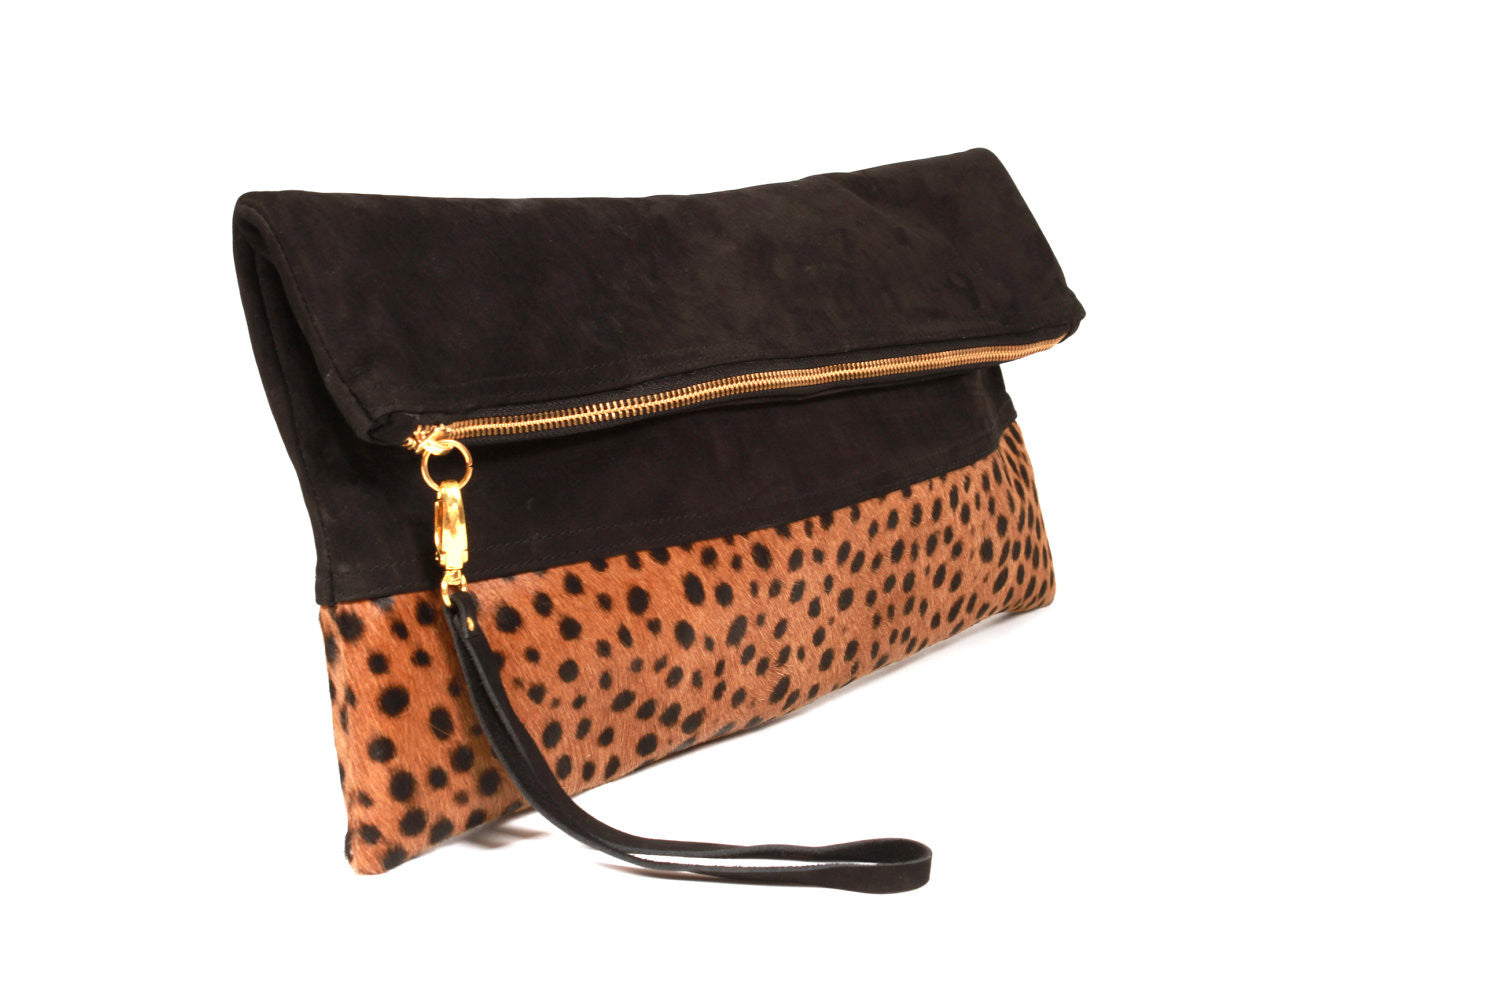 Oversized Leopard Print and Suede Clutch, Leather Clutch, Calf Hair Leather fold over clutch